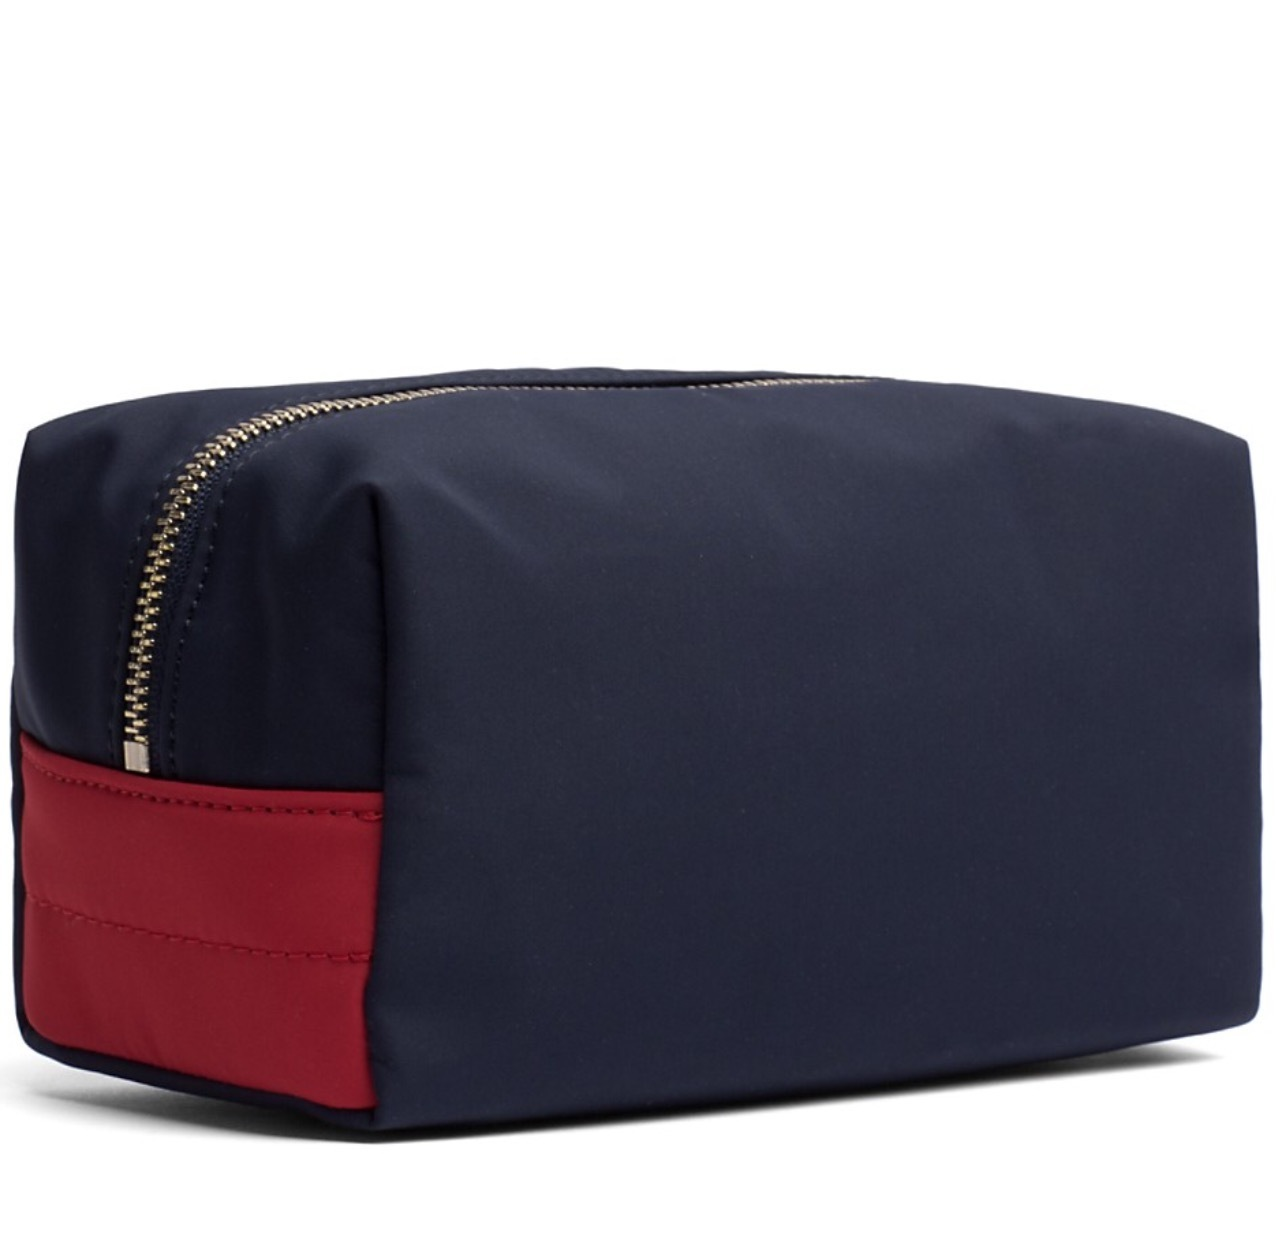 【Tommy Hilfiger】メイクアップ ポーチ+トラベルキット